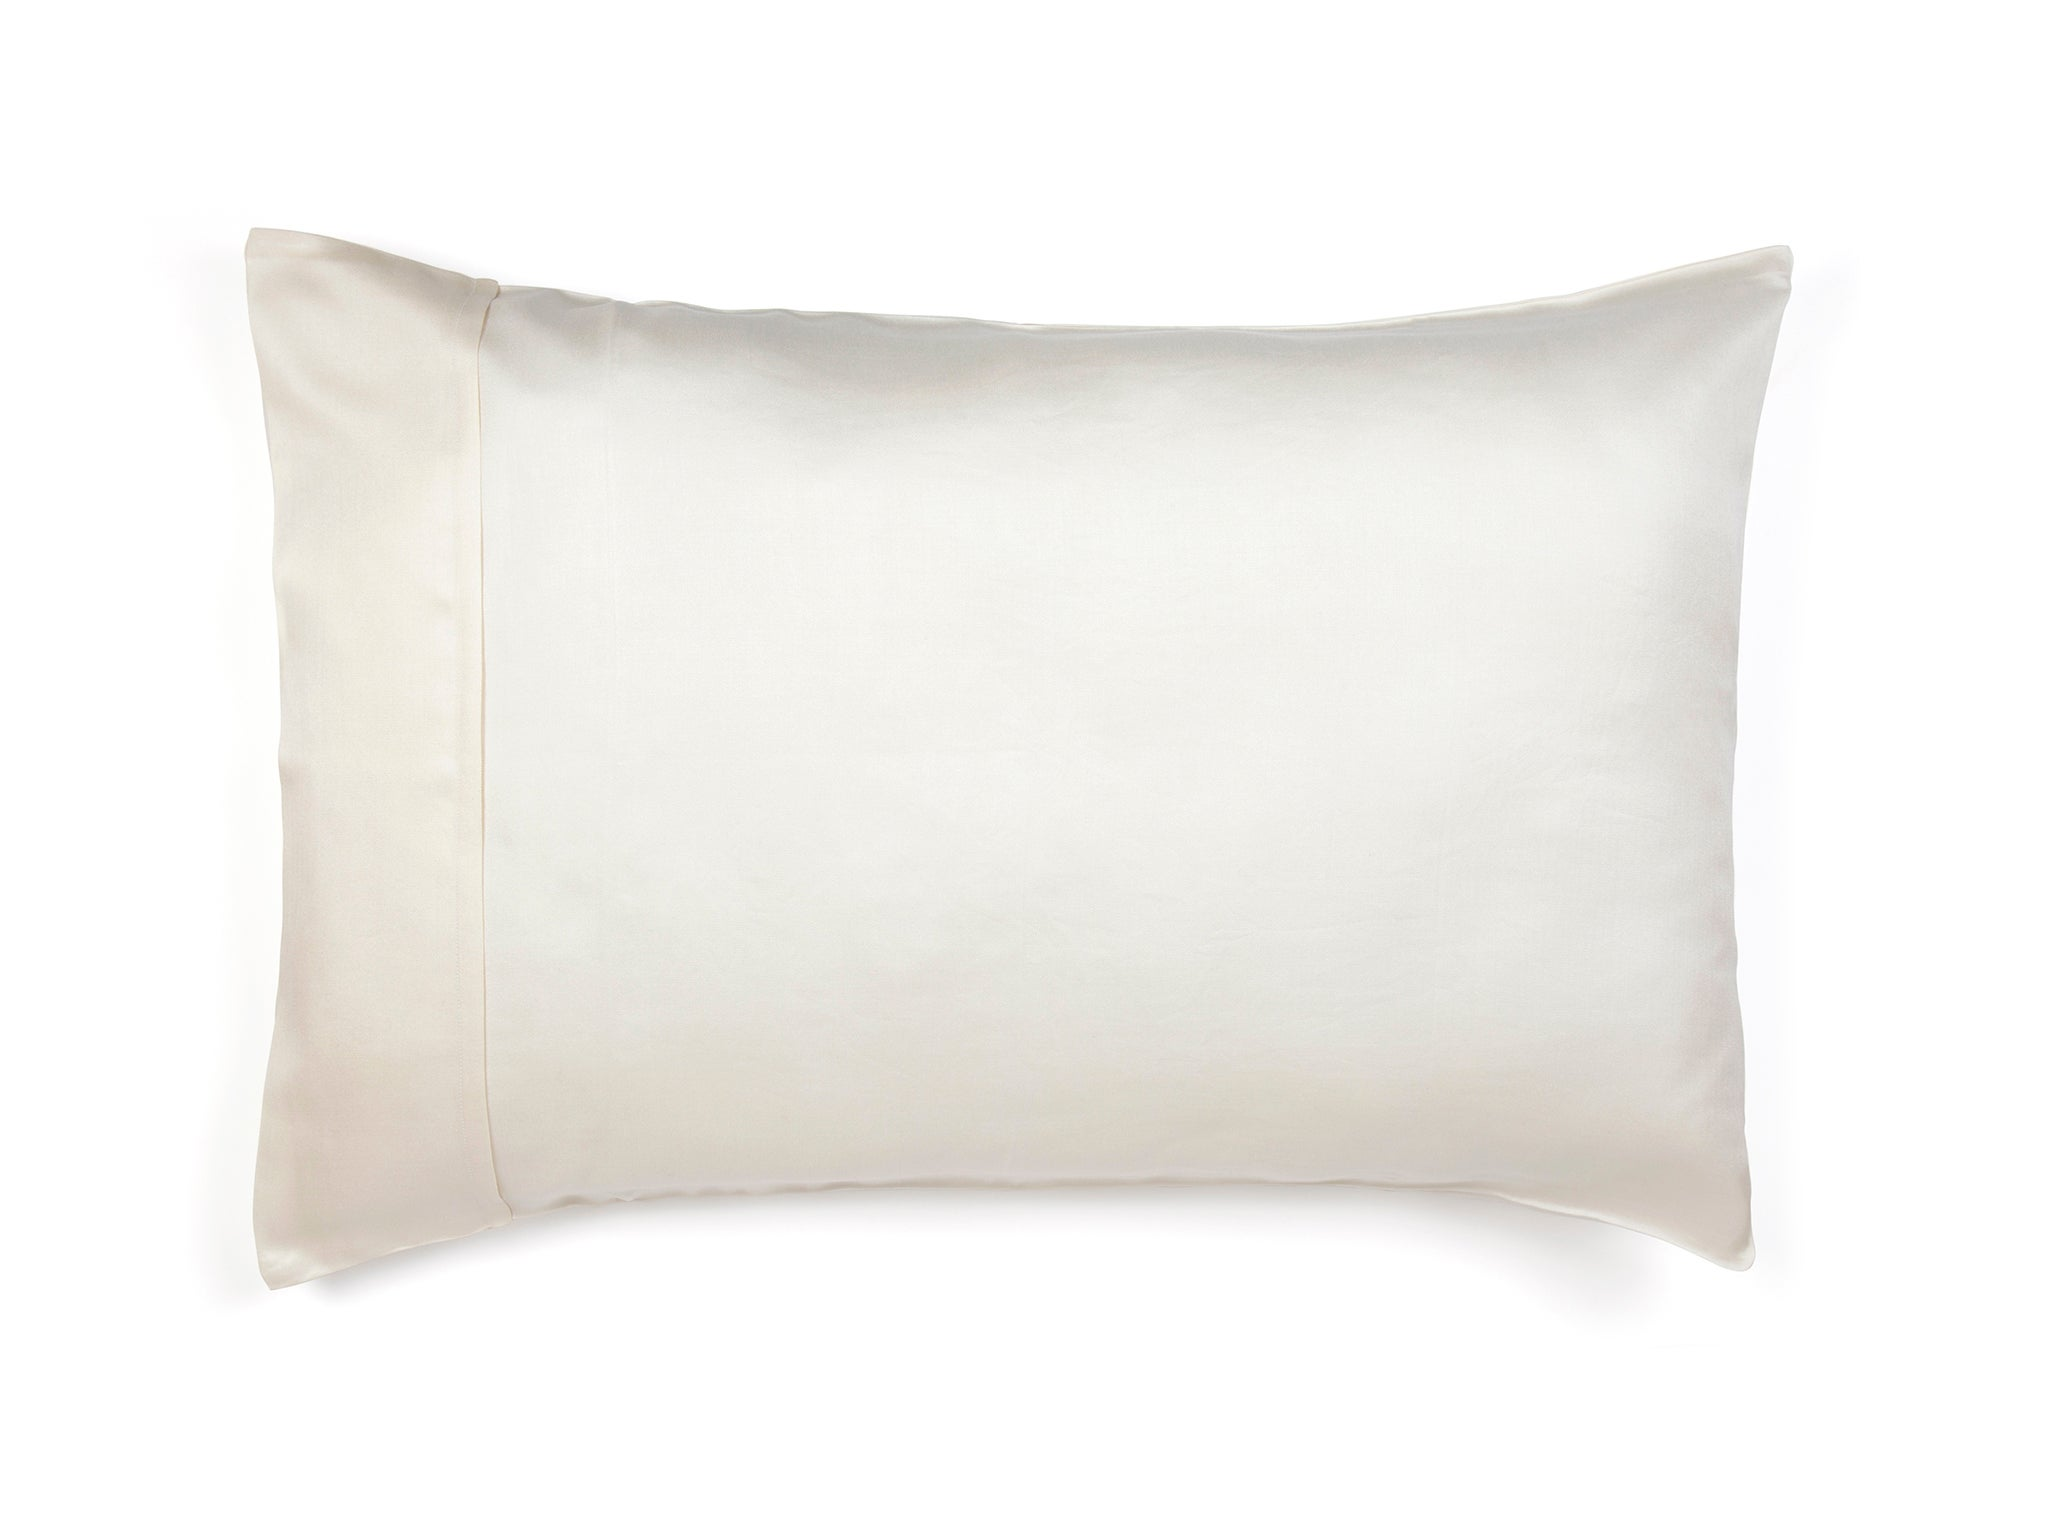 Pillowcase Pillow Shams Male Swimmer